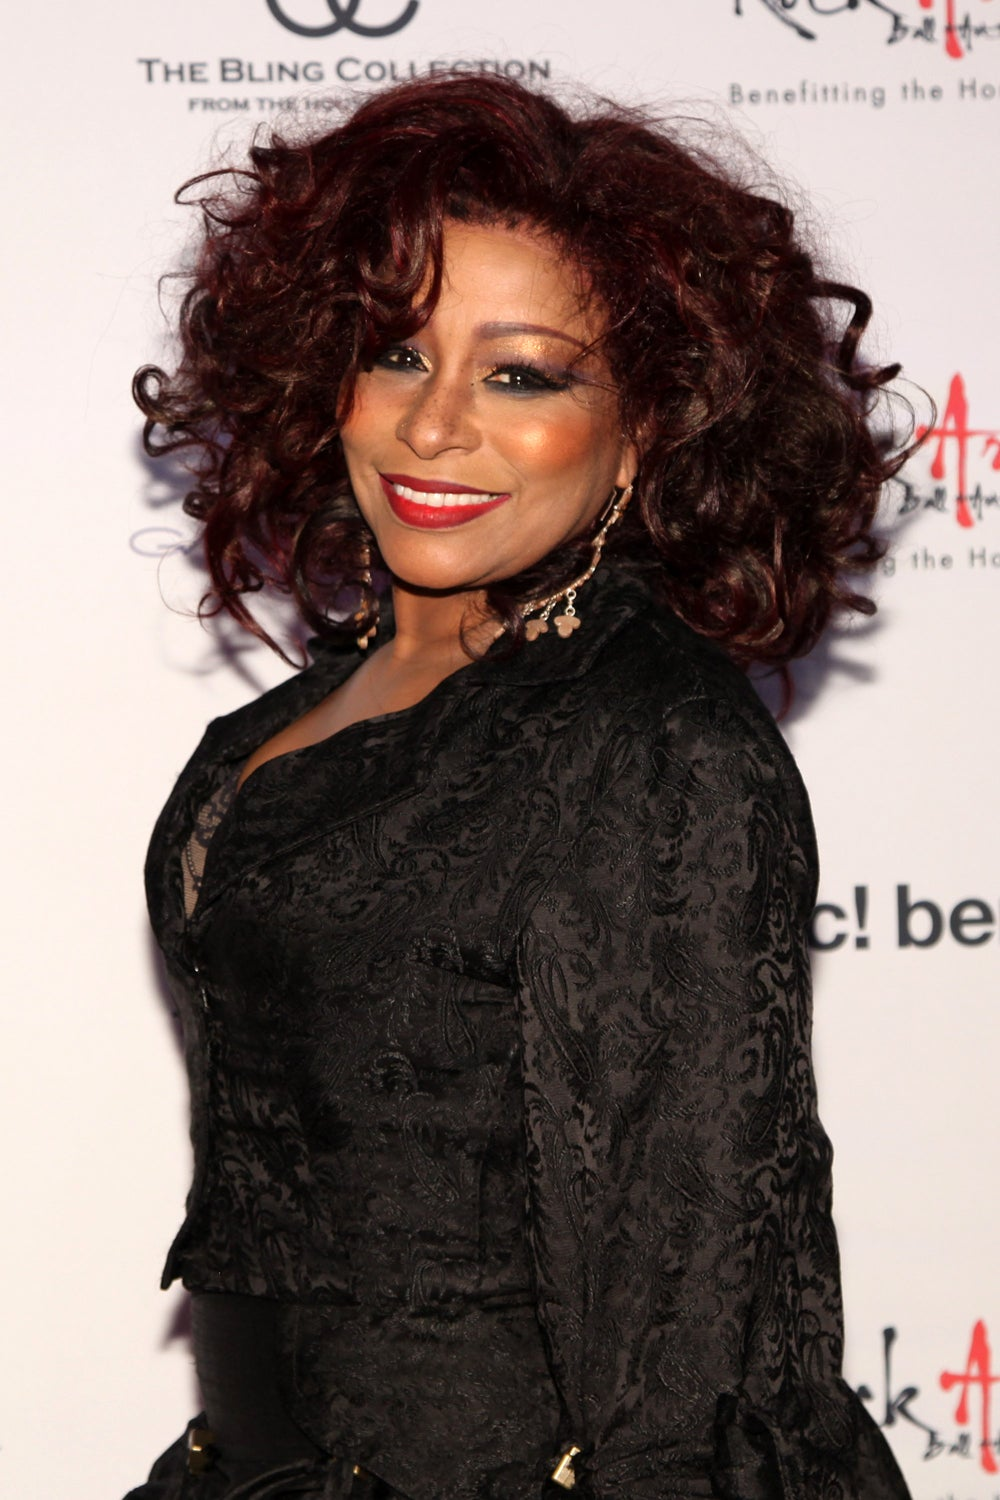 Coffee Talk: Chaka Khan Selected for Apollo Hall of Fame